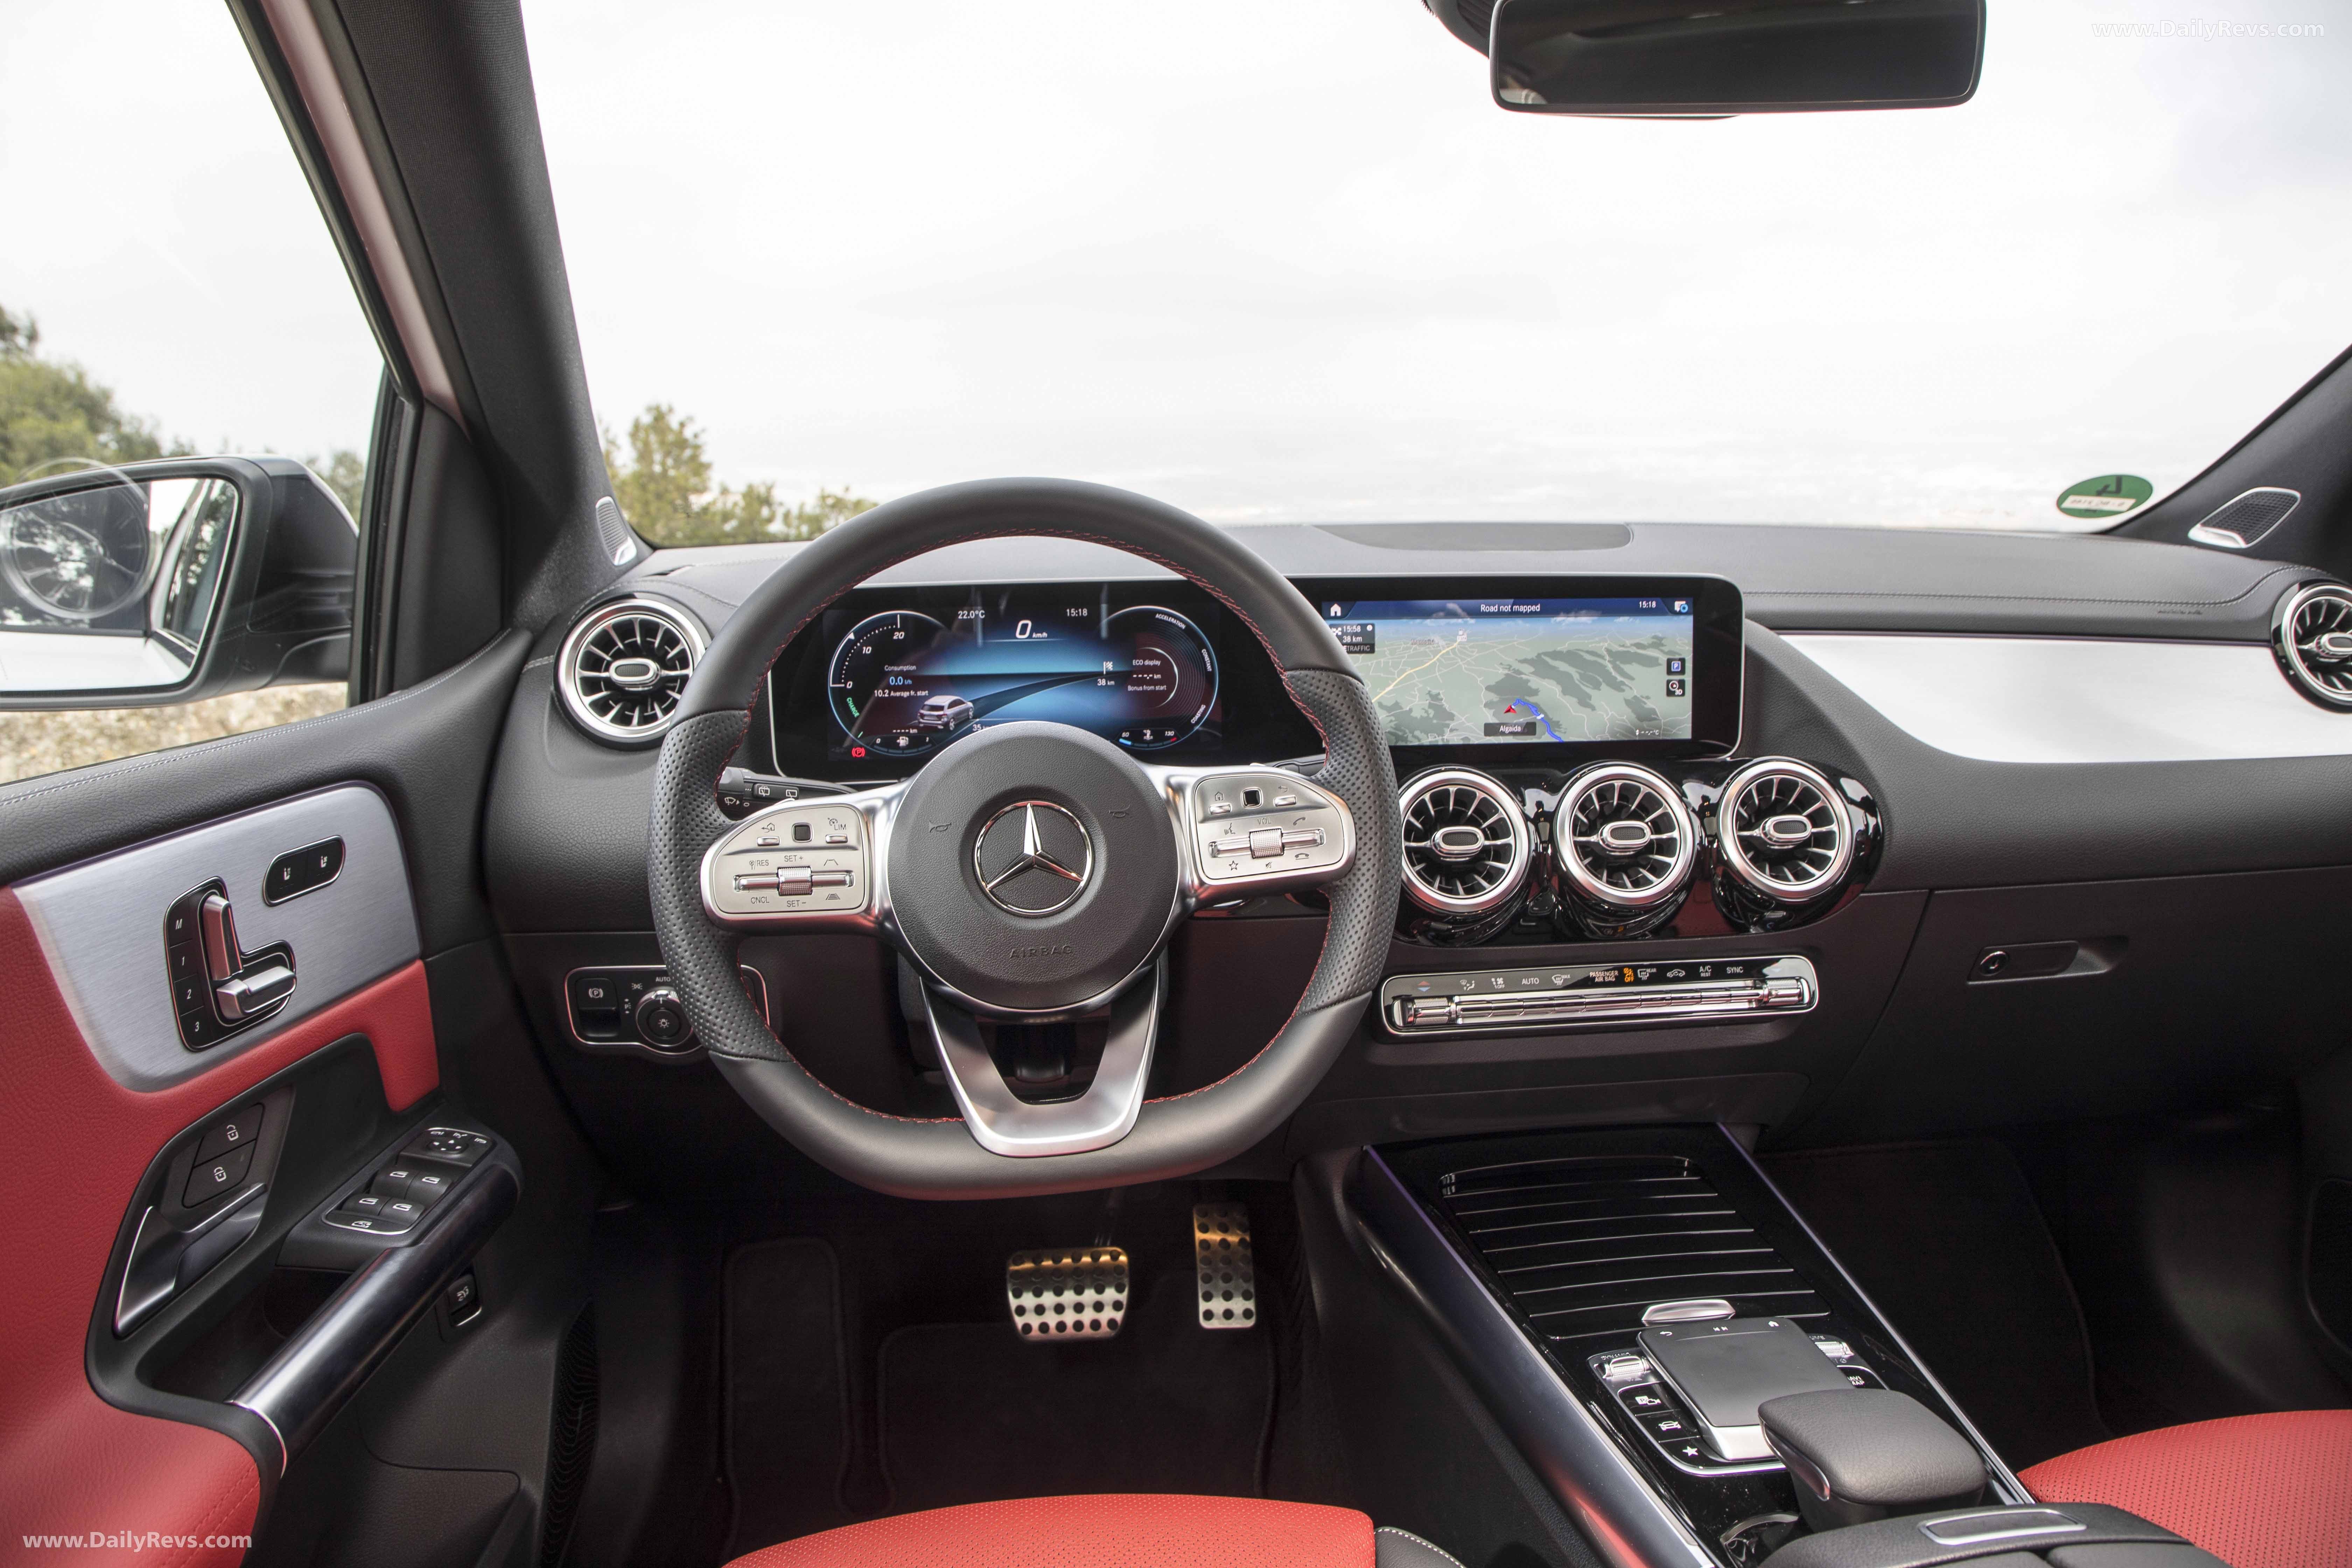 Mercedes Benz stop vehicle shift to p